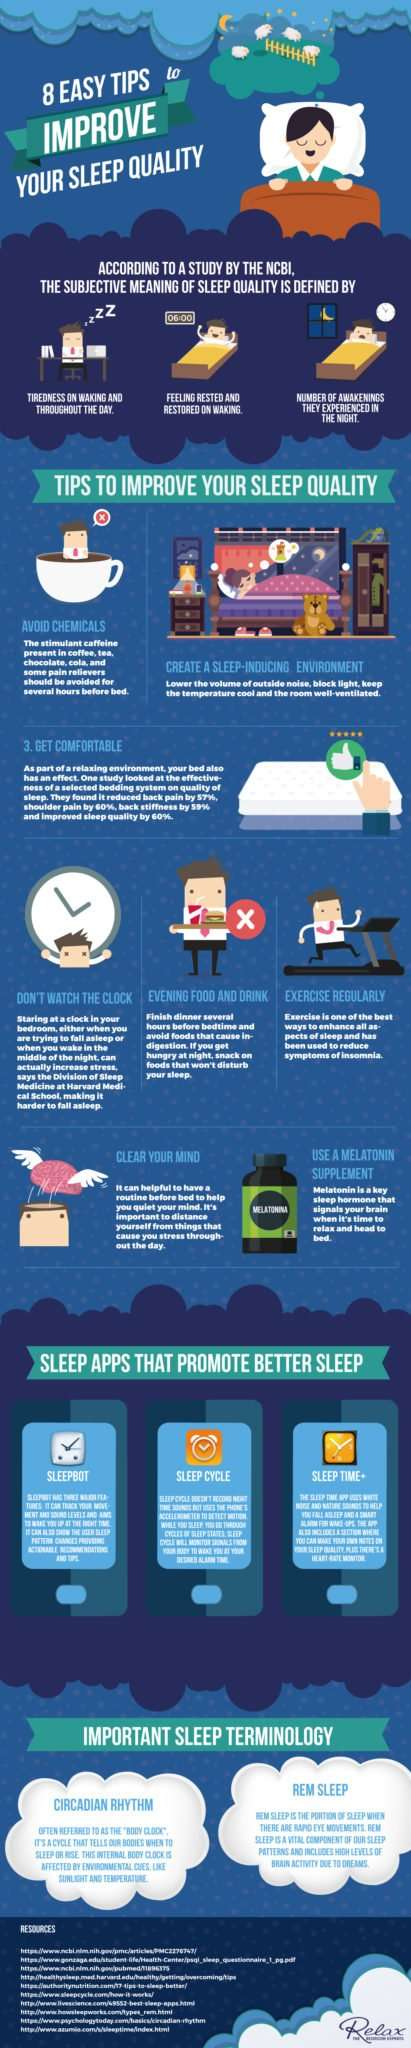 sleep-quality-infographic